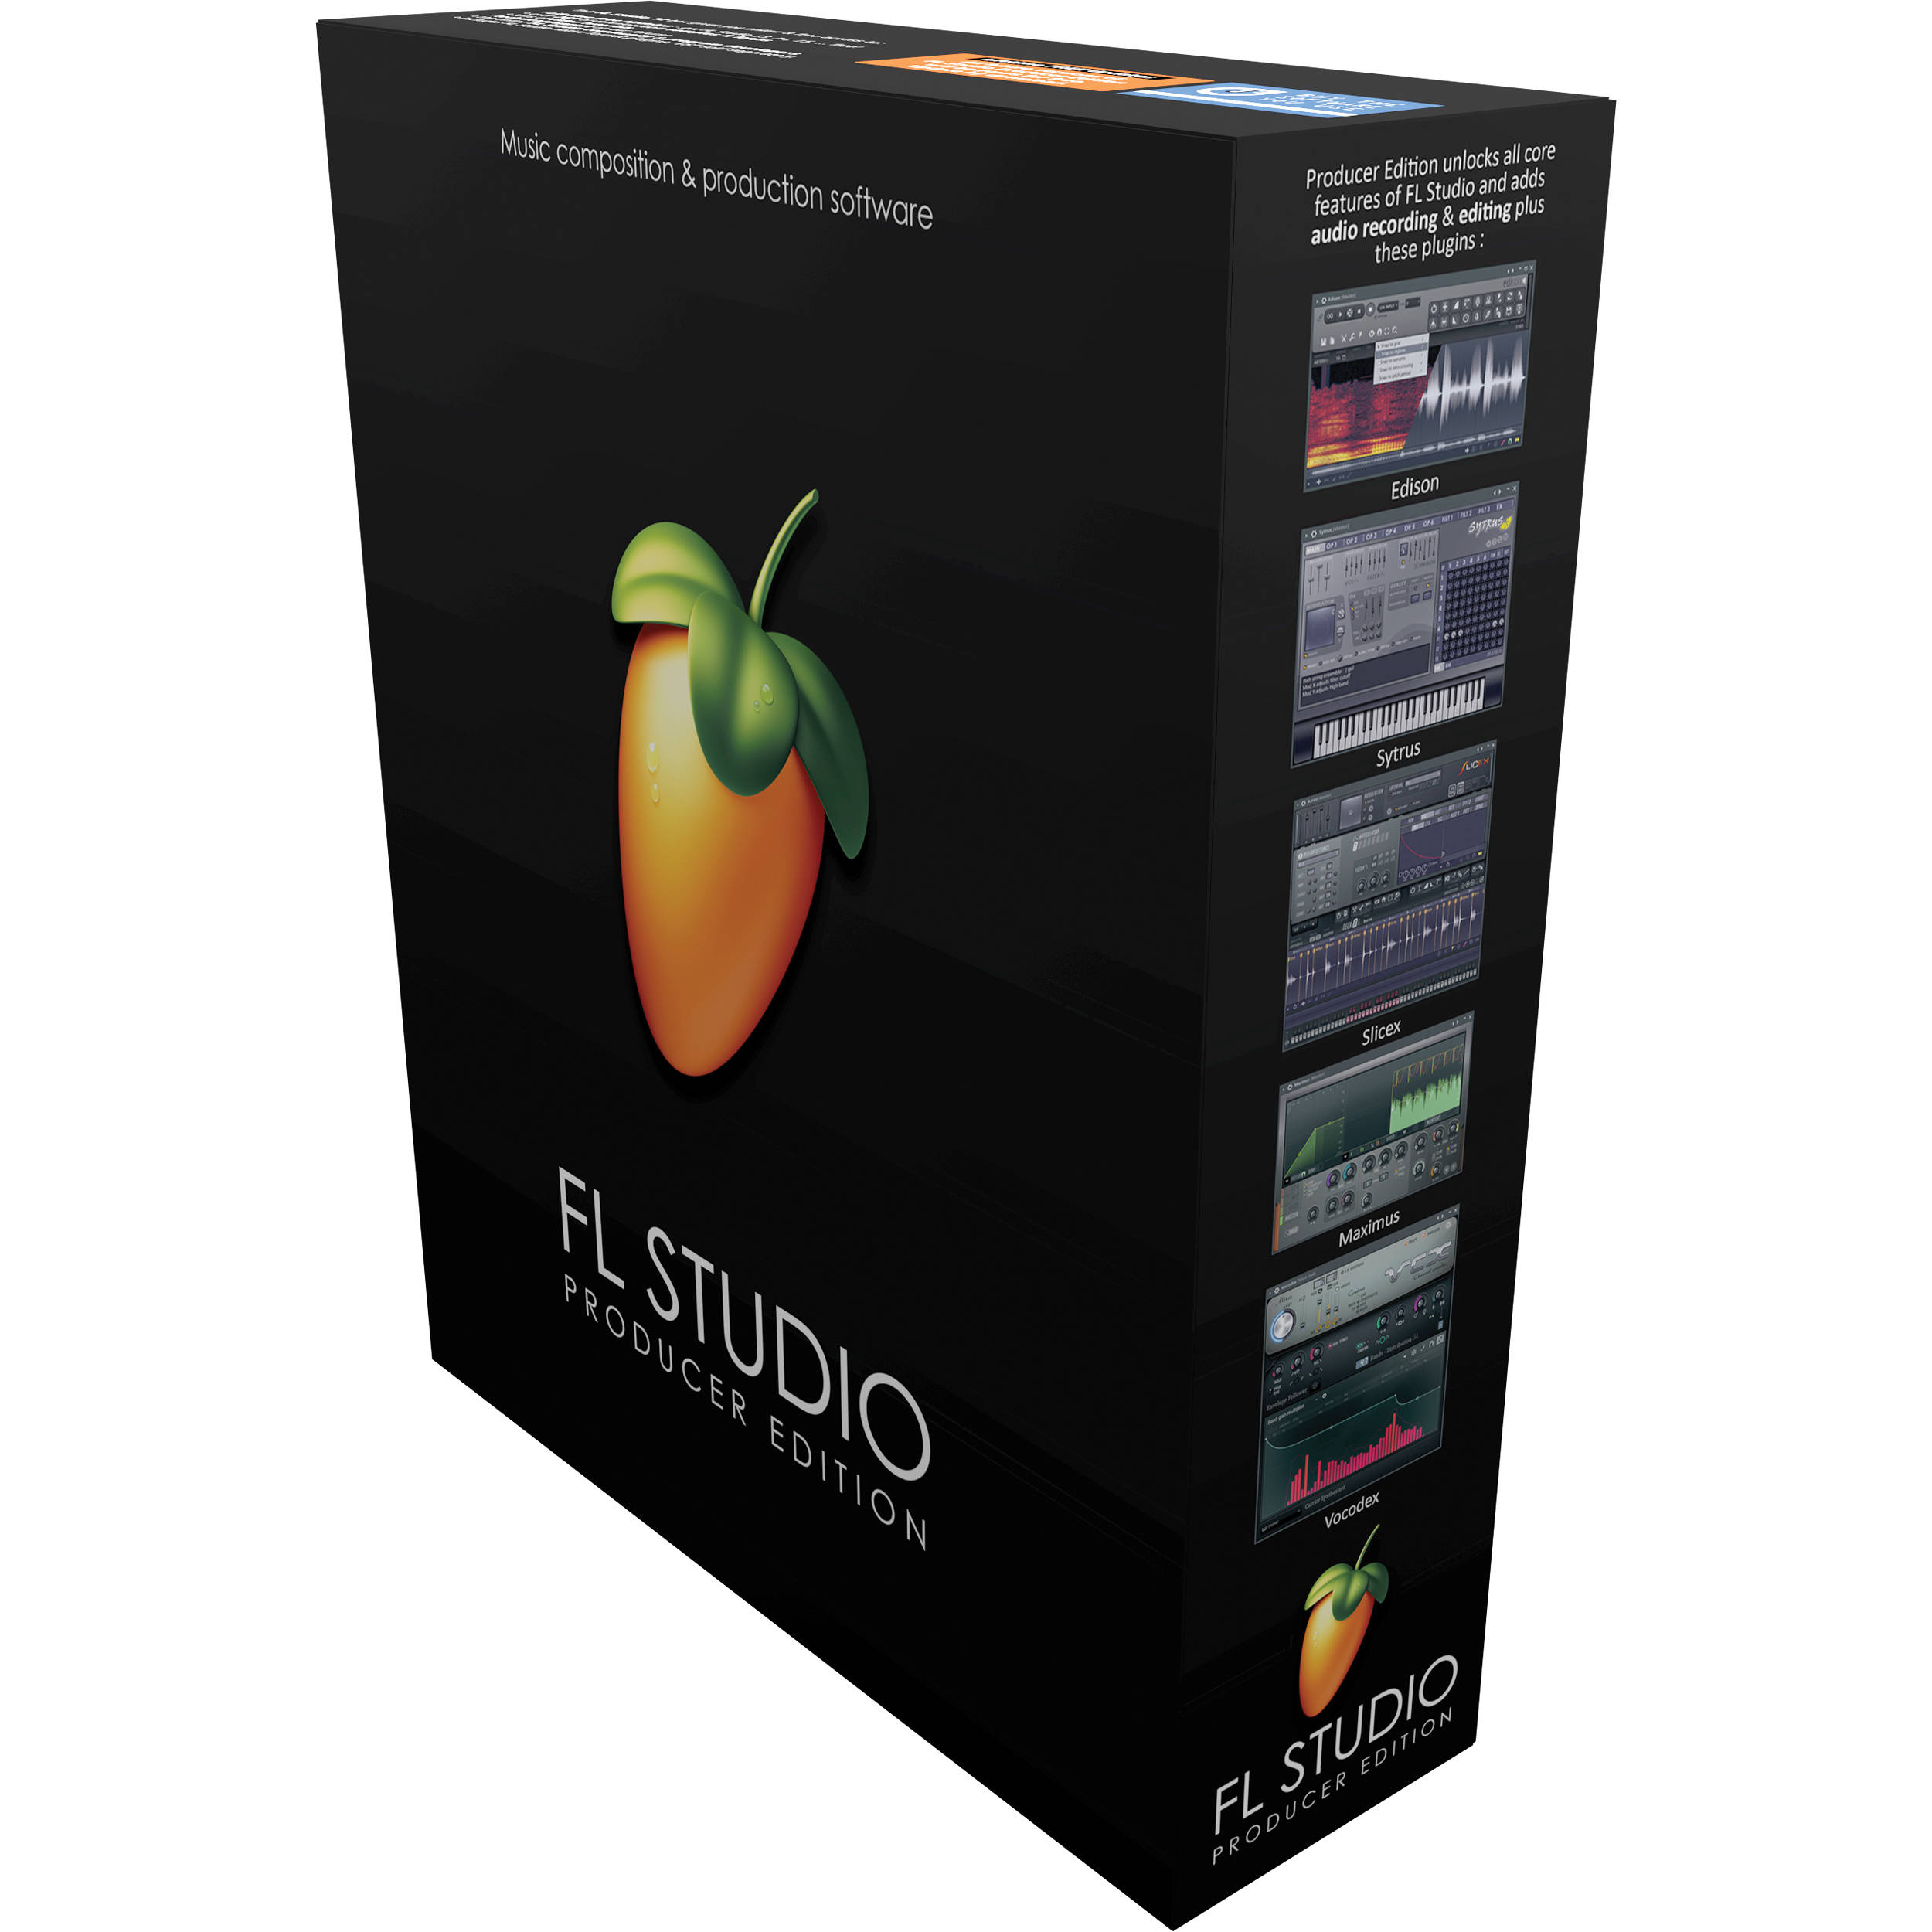 Fl studio 10 free fall [free download] youtube.